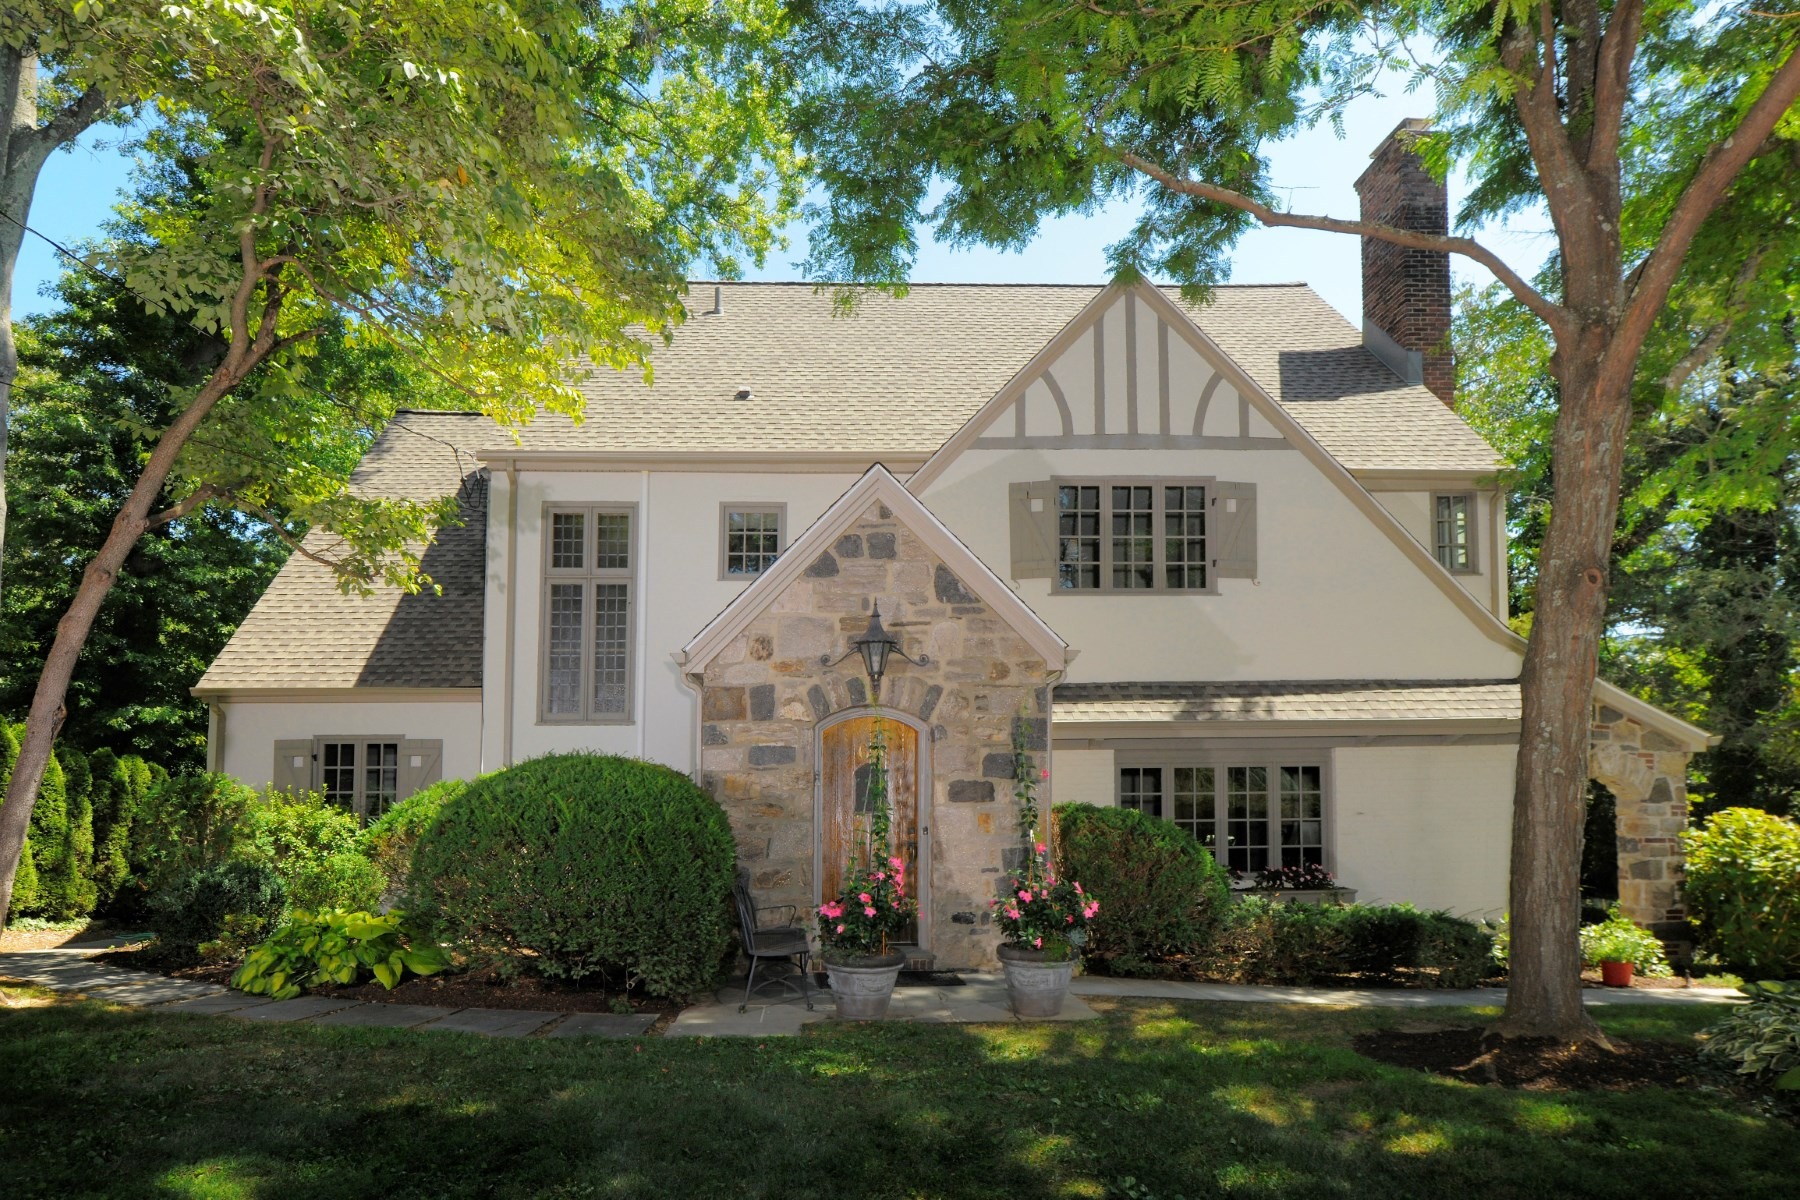 Single Family Home for Sale at Classic Milbrook Gem 65 Overlook Drive Greenwich, Connecticut 06830 United States